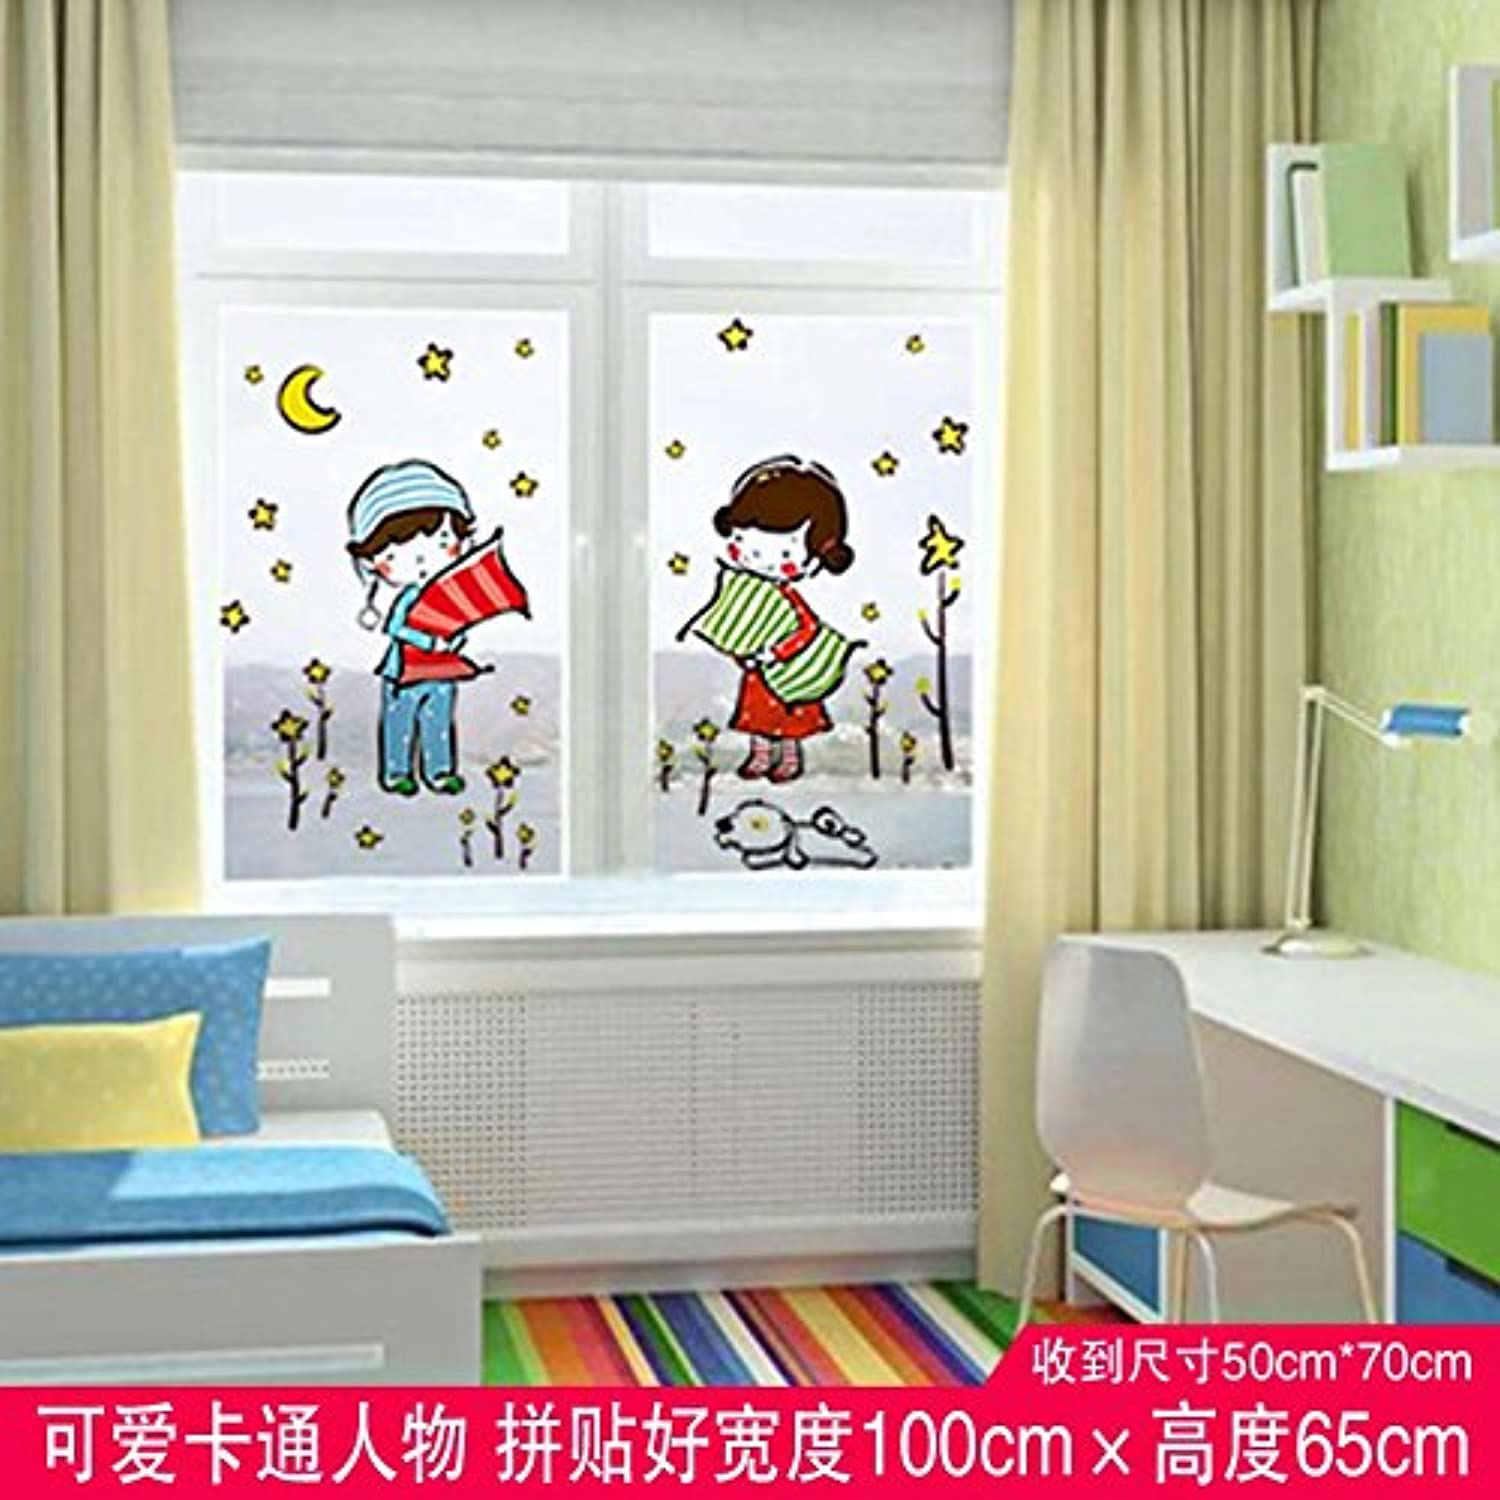 Znzbzt Bedroom Wall Art Sticker Room Interior Wall Painting self Adhesive, Cute Cartoon Characters, King